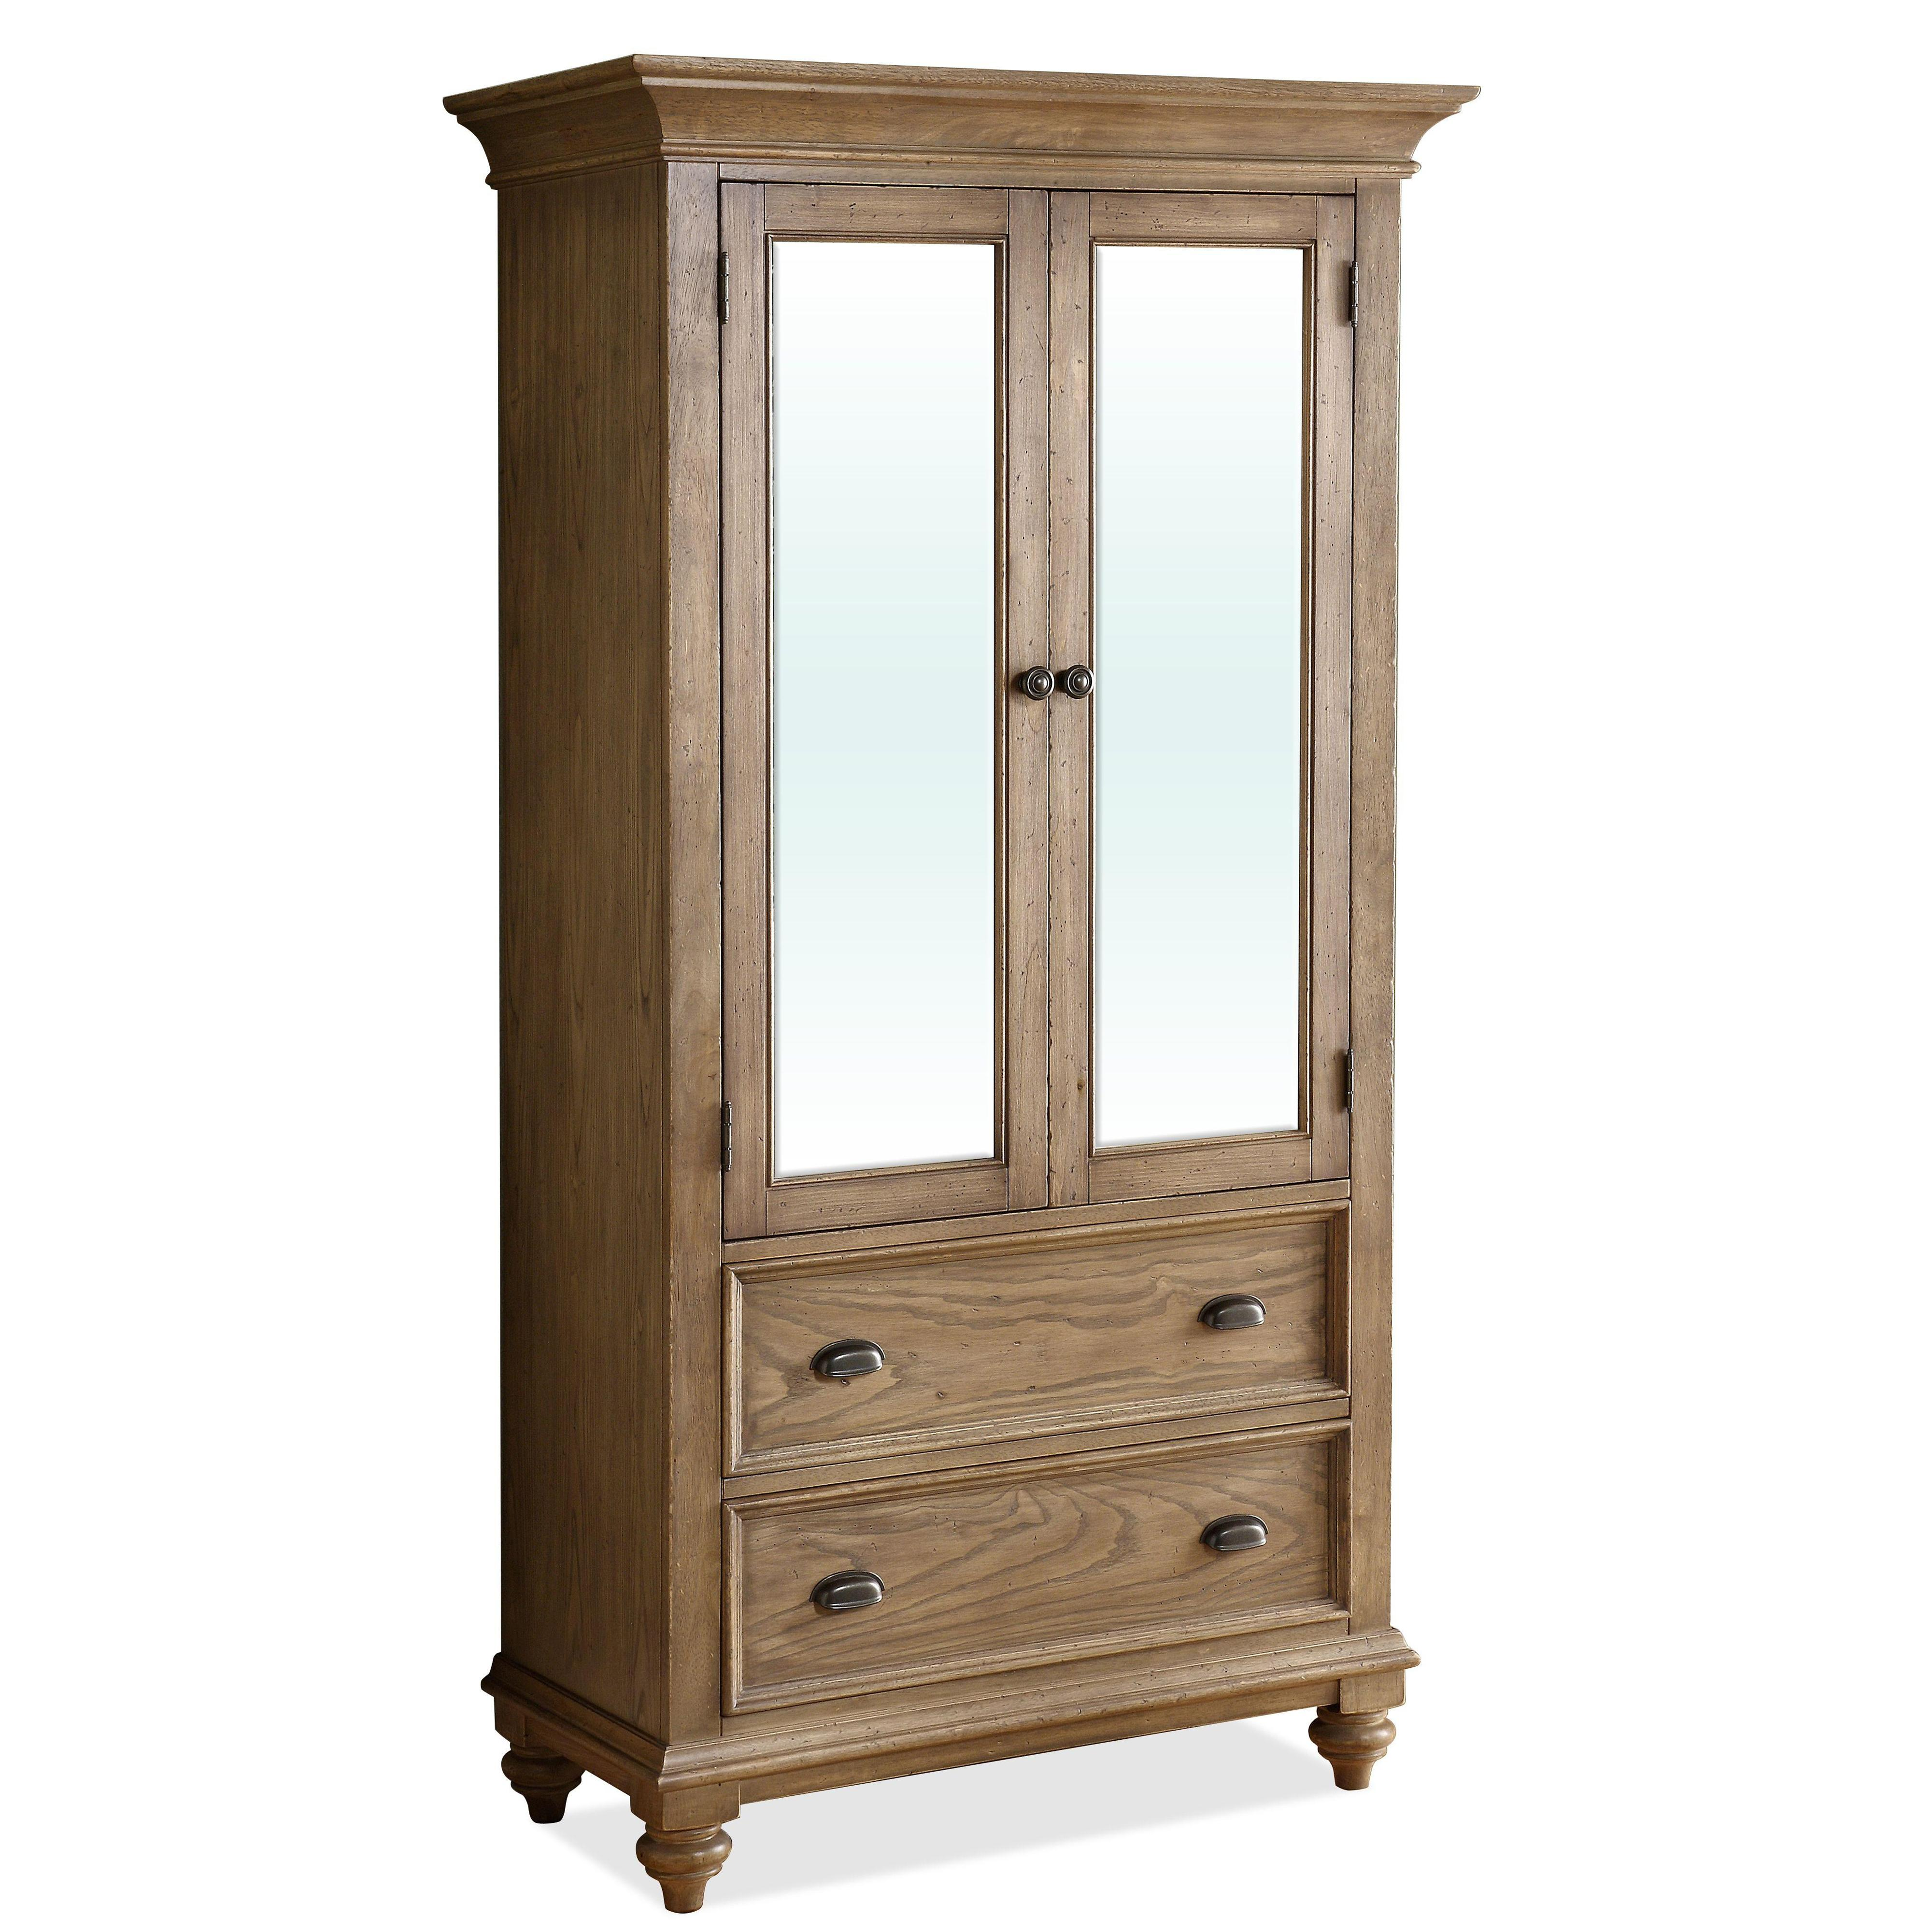 2 Door Mirror Armoire with 5 Drawers